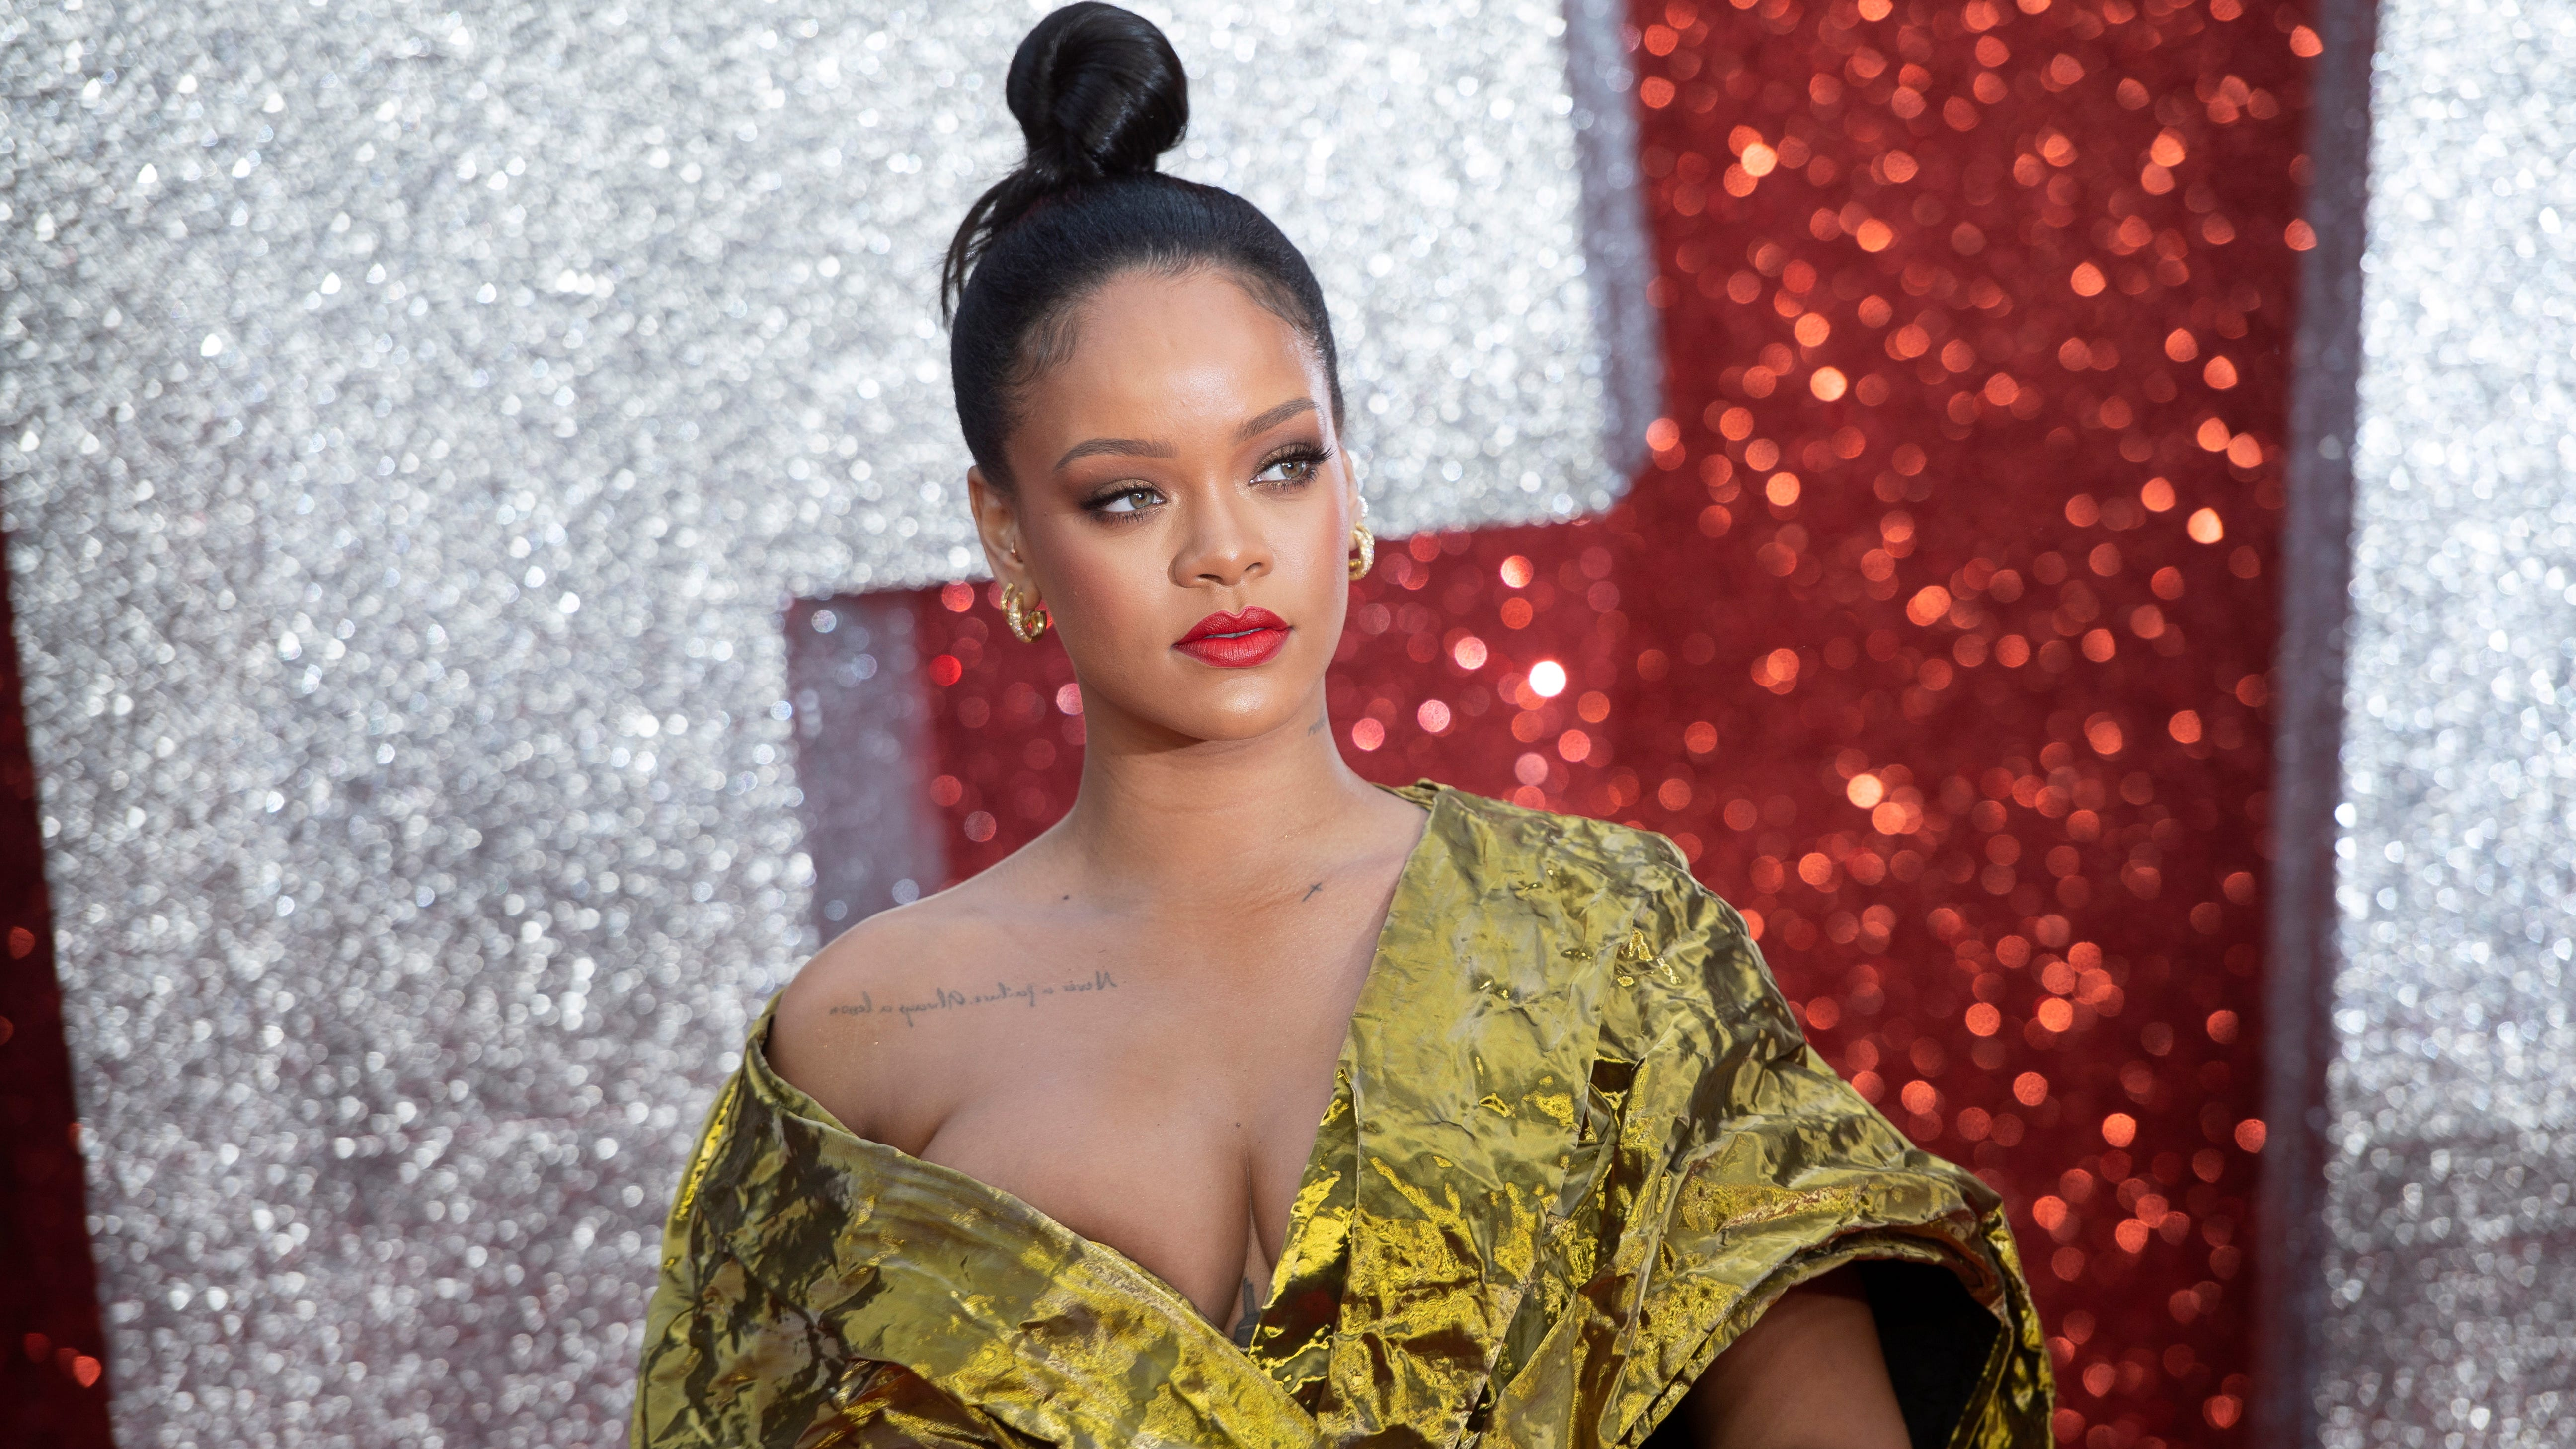 Followers in a frenzy over what appears to be like to be Rihanna recording a novel album thumbnail